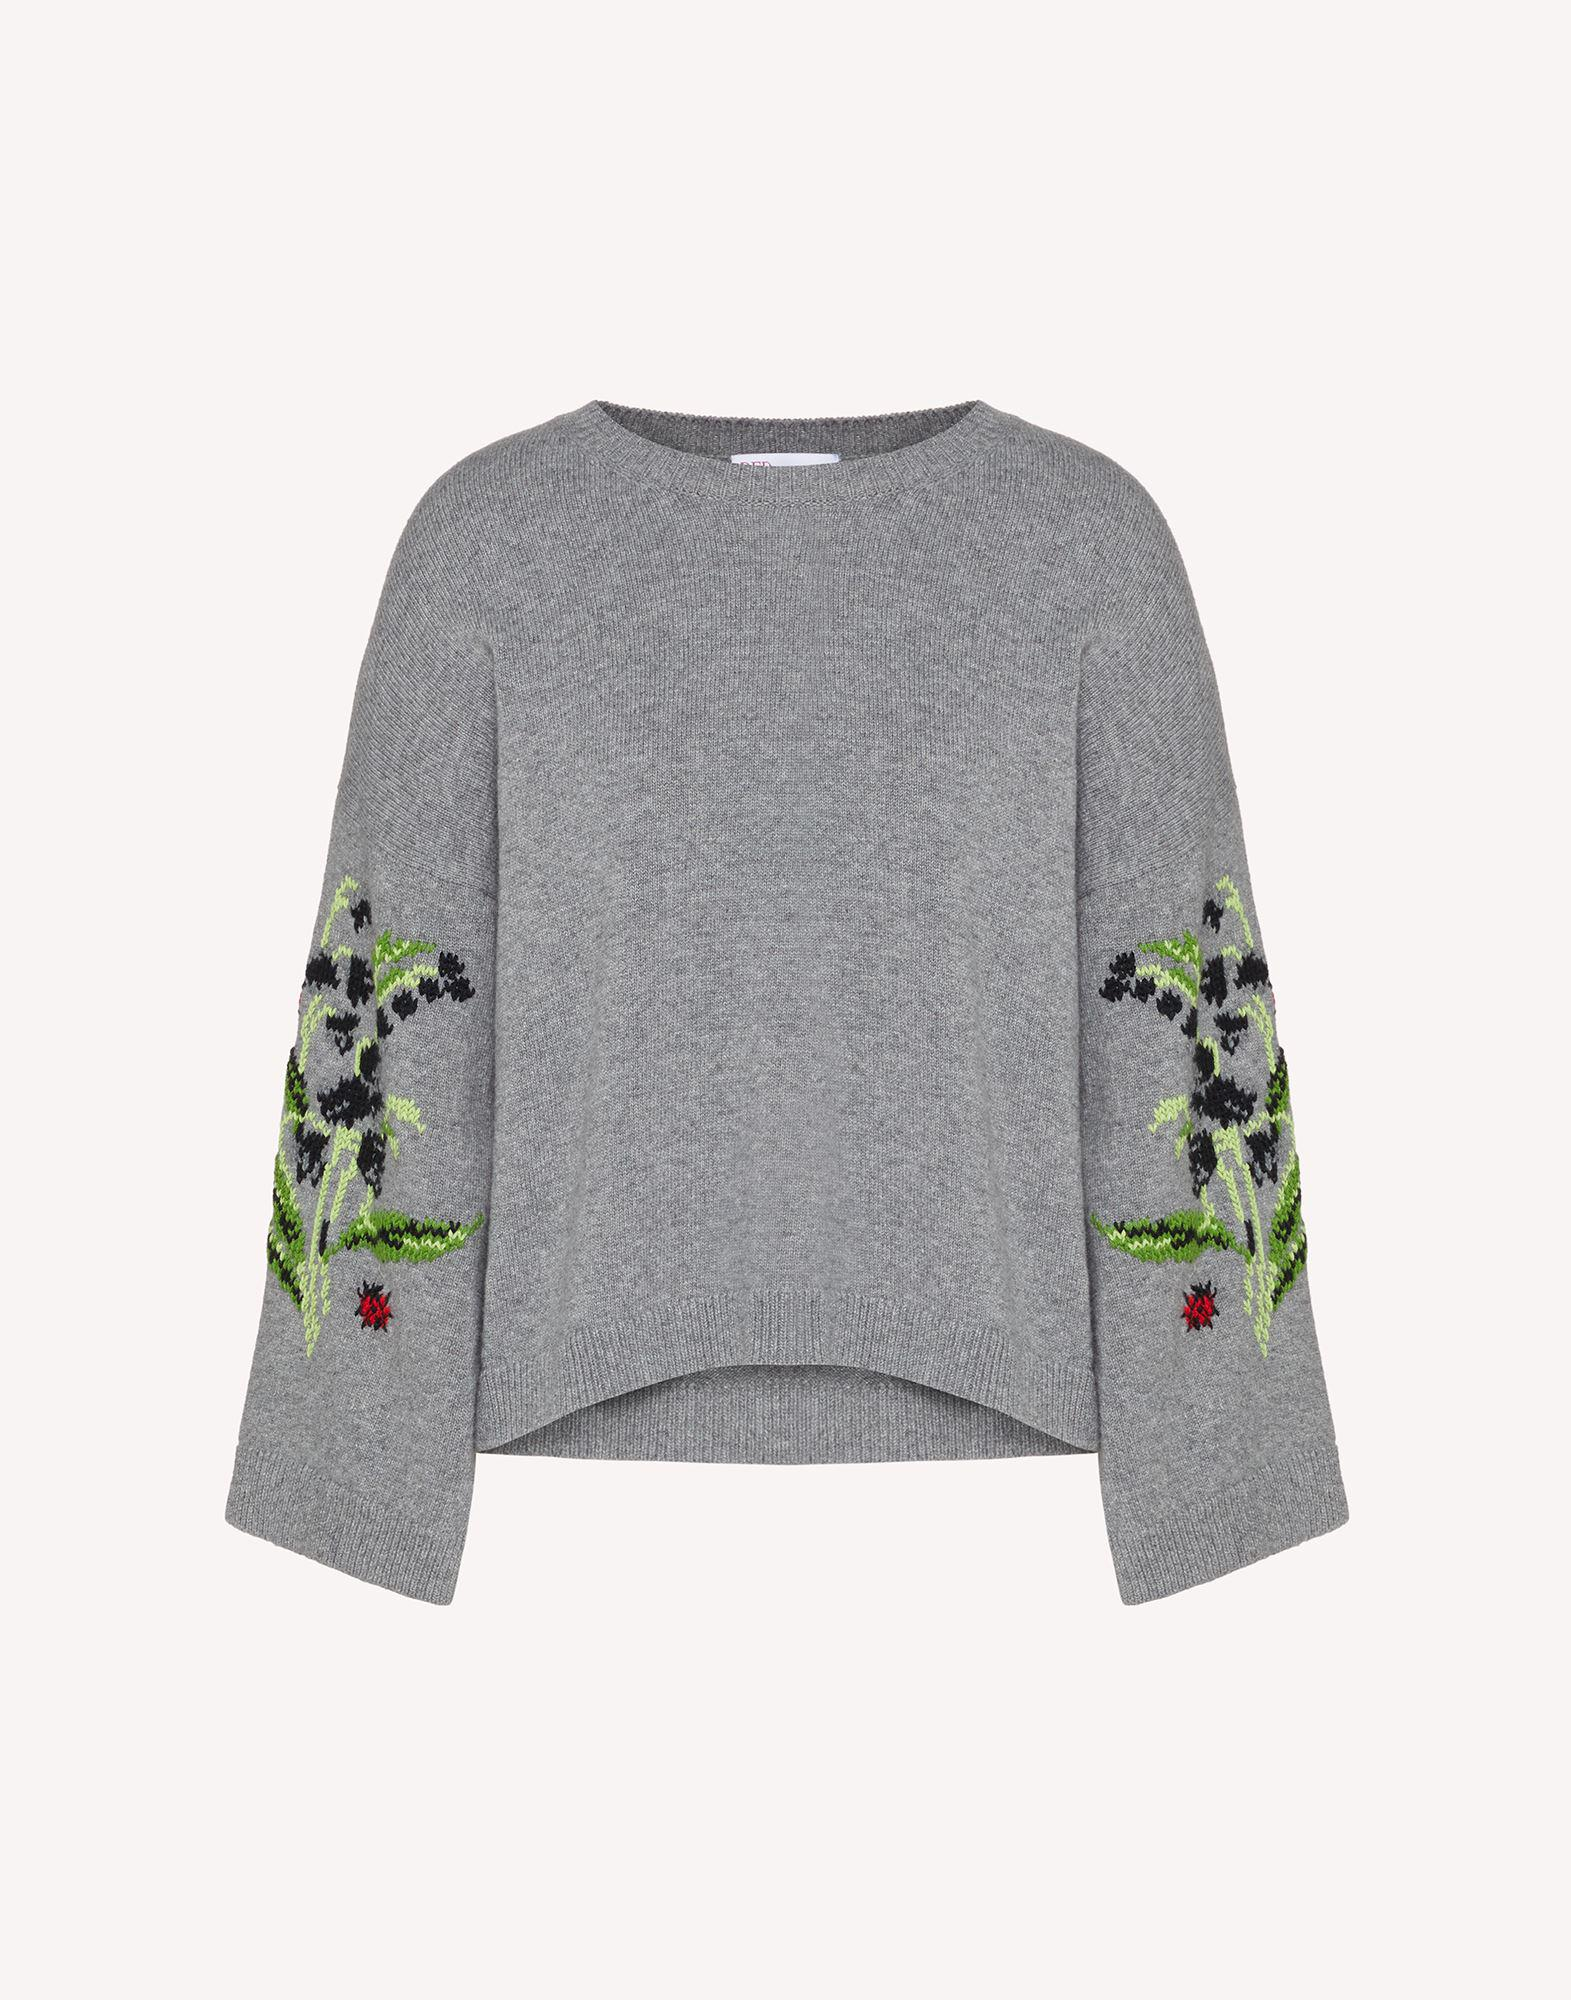 FLORAL JACQUARD WOOL-BLEND SWEATER 4